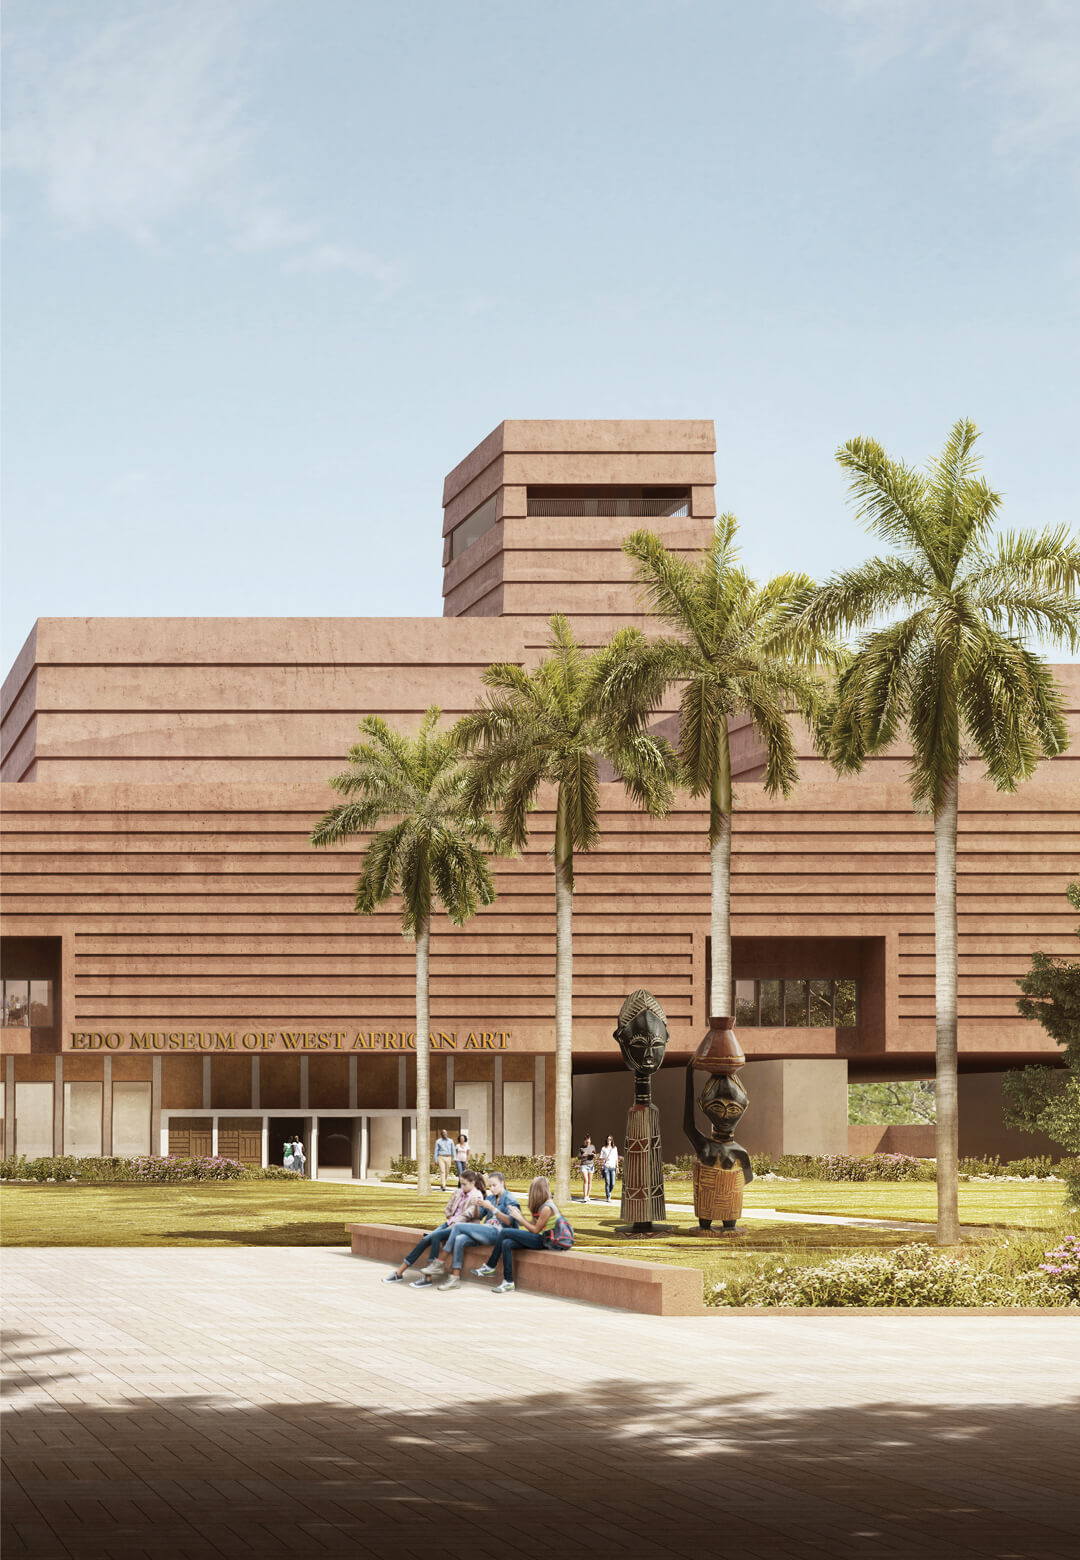 View of main entrance to the Edo Museum of West African Art and courtyard garden in Benin City, Nigeria | Edo Museum of West African Art by Adjaye Associates | STIRworld